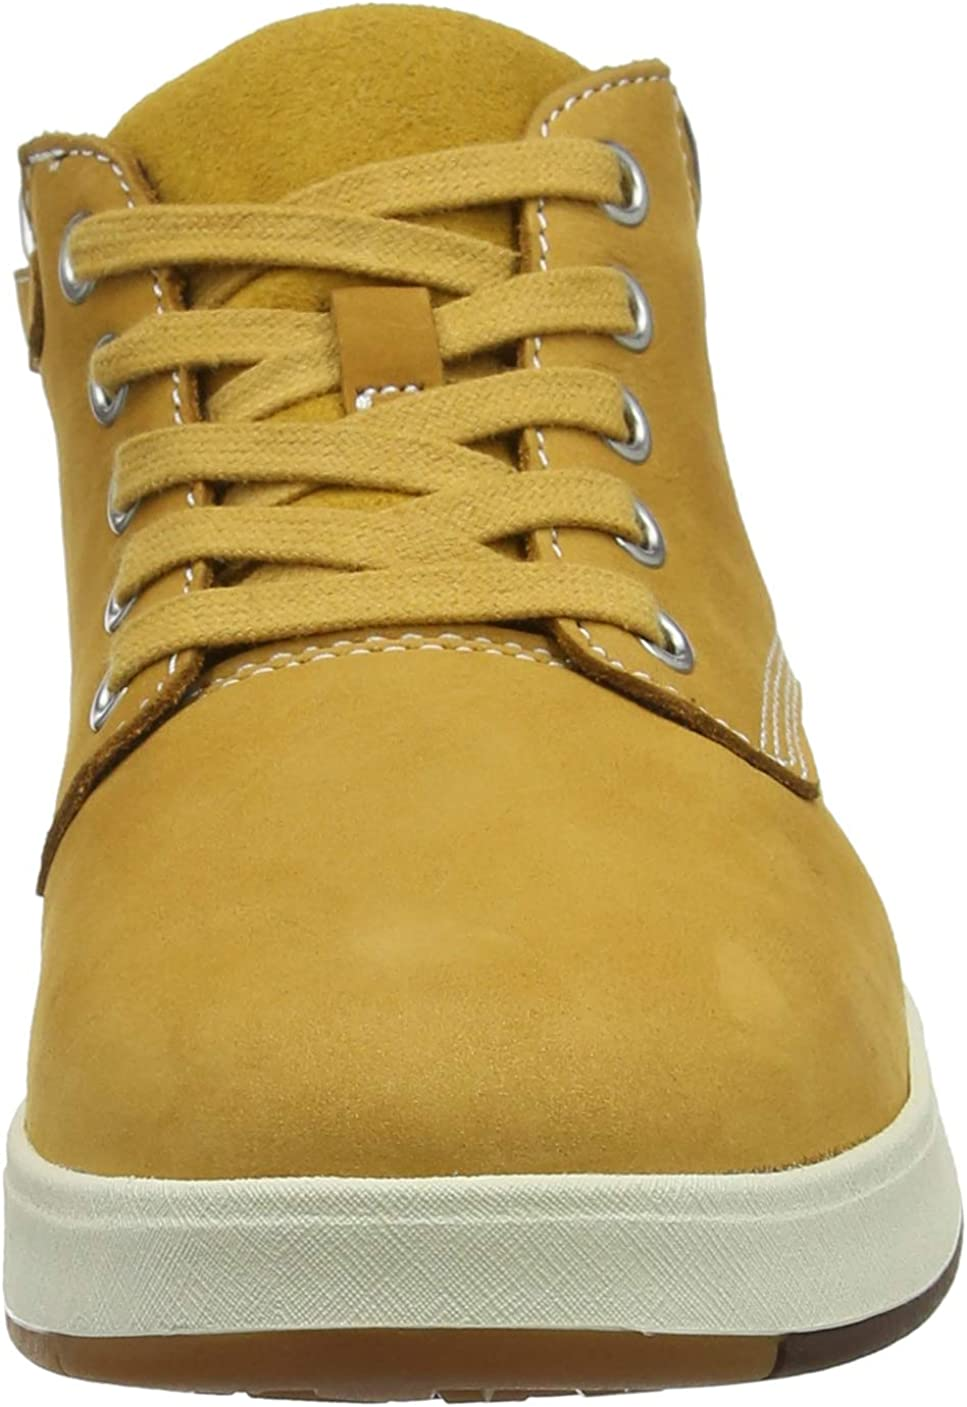 Timberland Unisex Kinder Davis Square Leather Chukka Toddler Stiefel